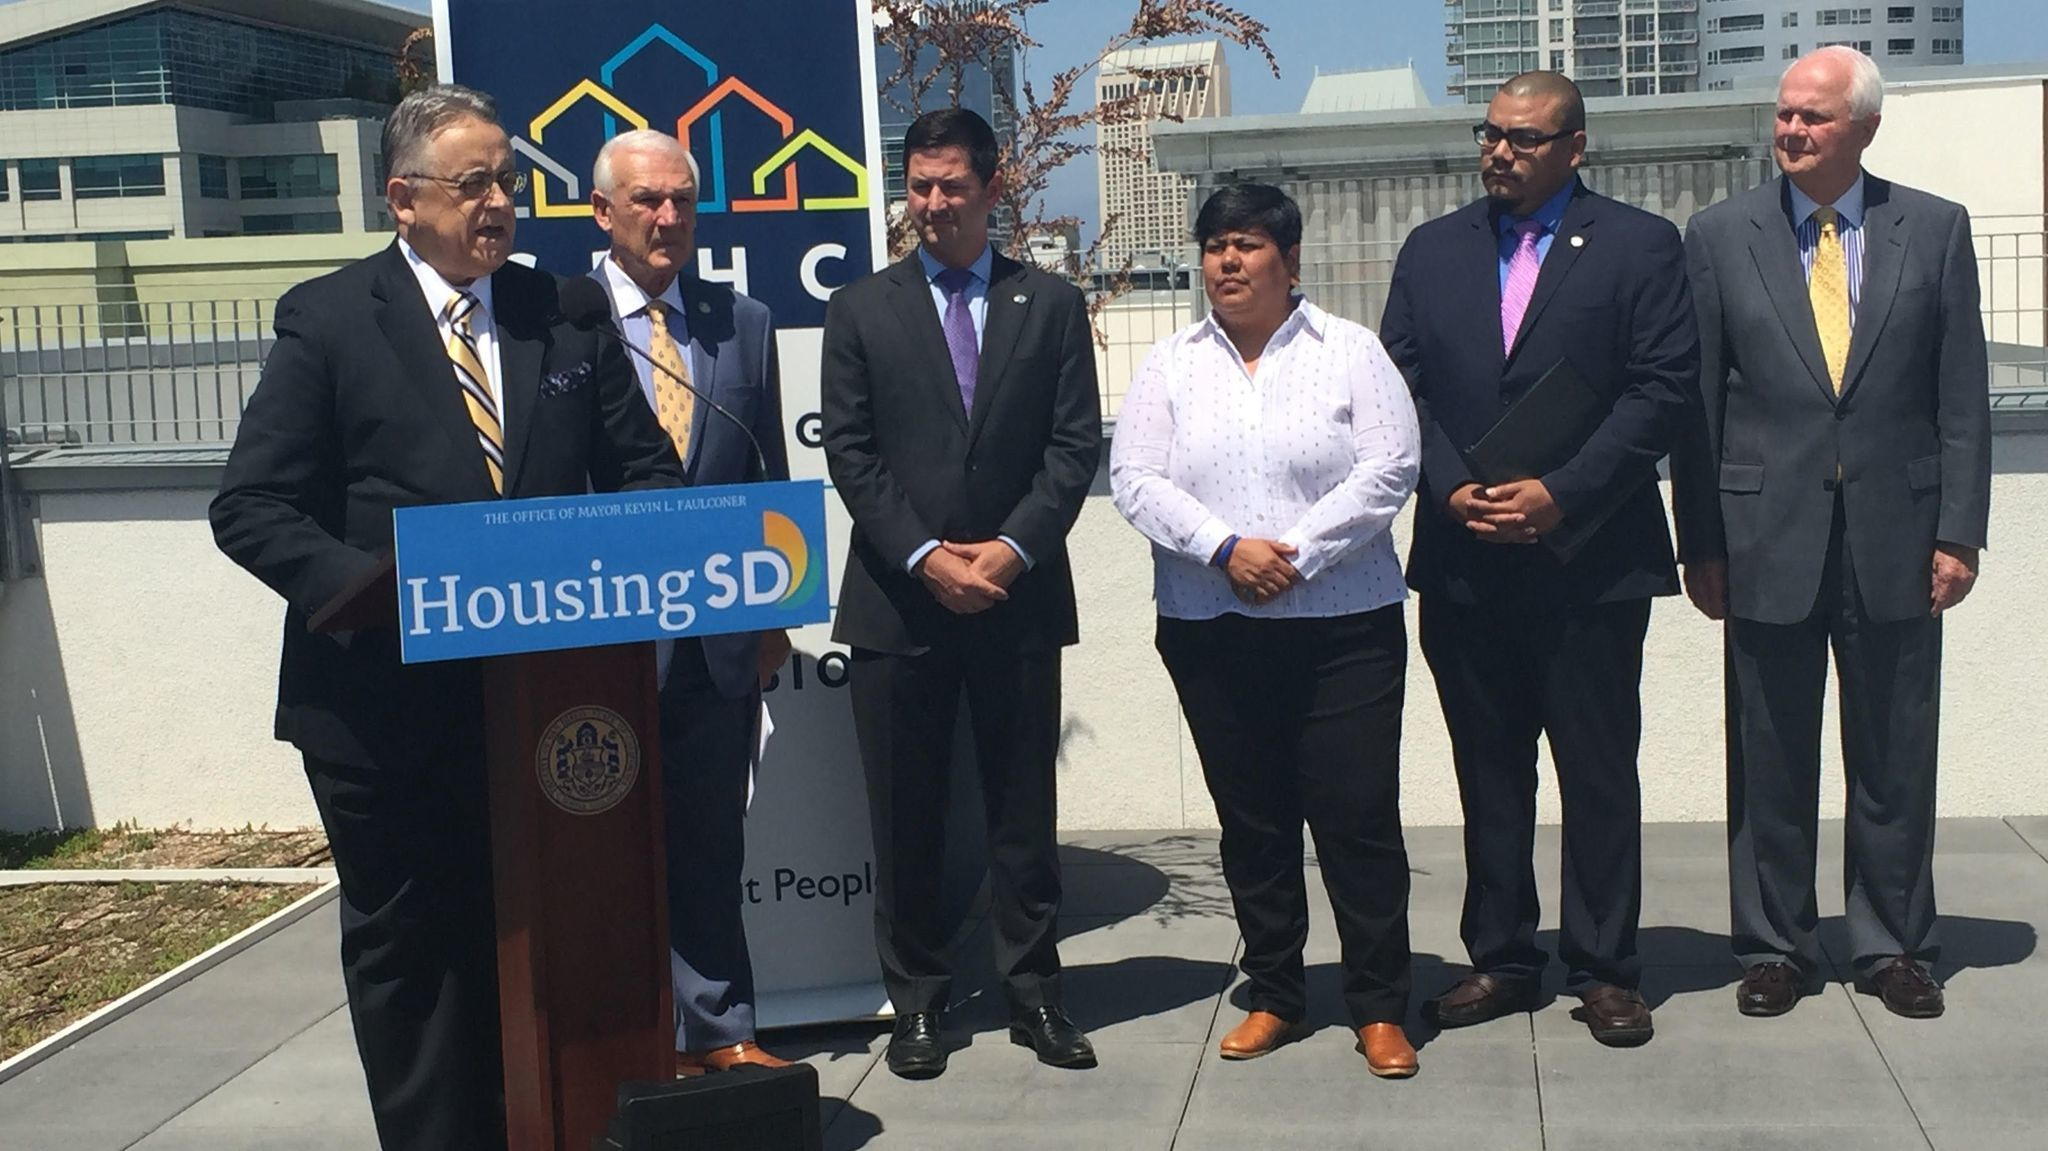 free meals and food homeless needs san diego homeless efforts get 80m boost for various services